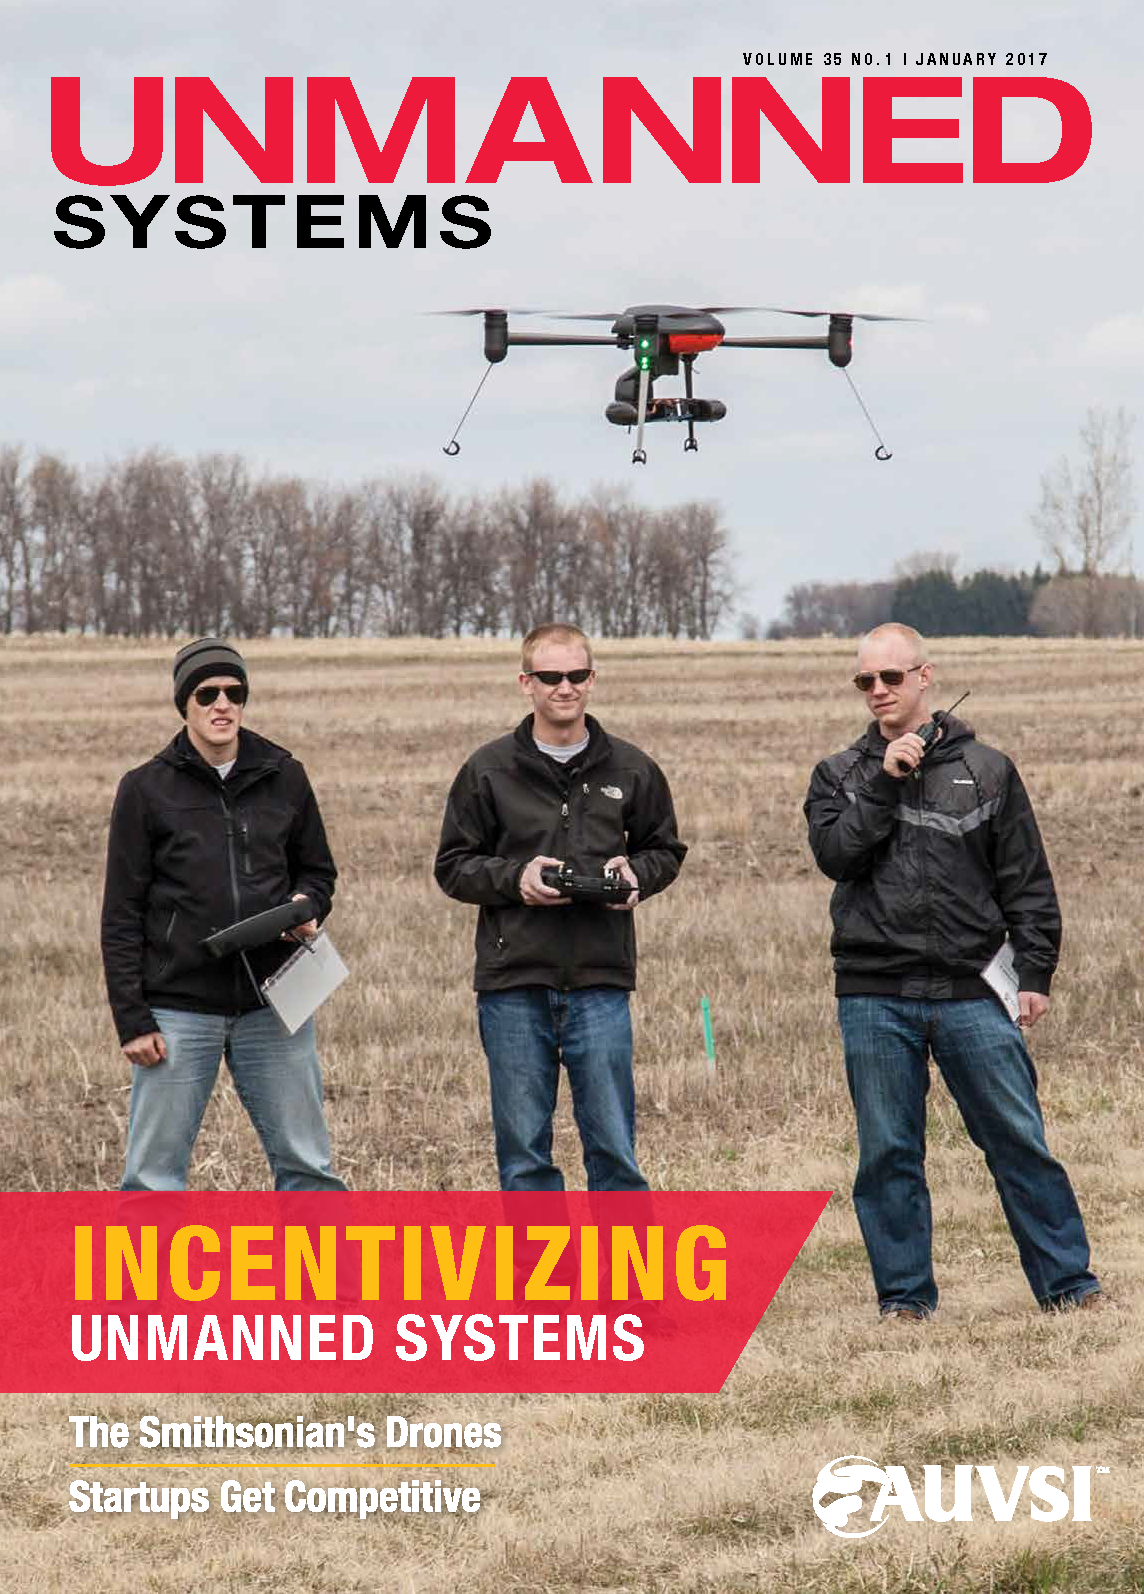 Unmanned Systems Magazine - January 2017